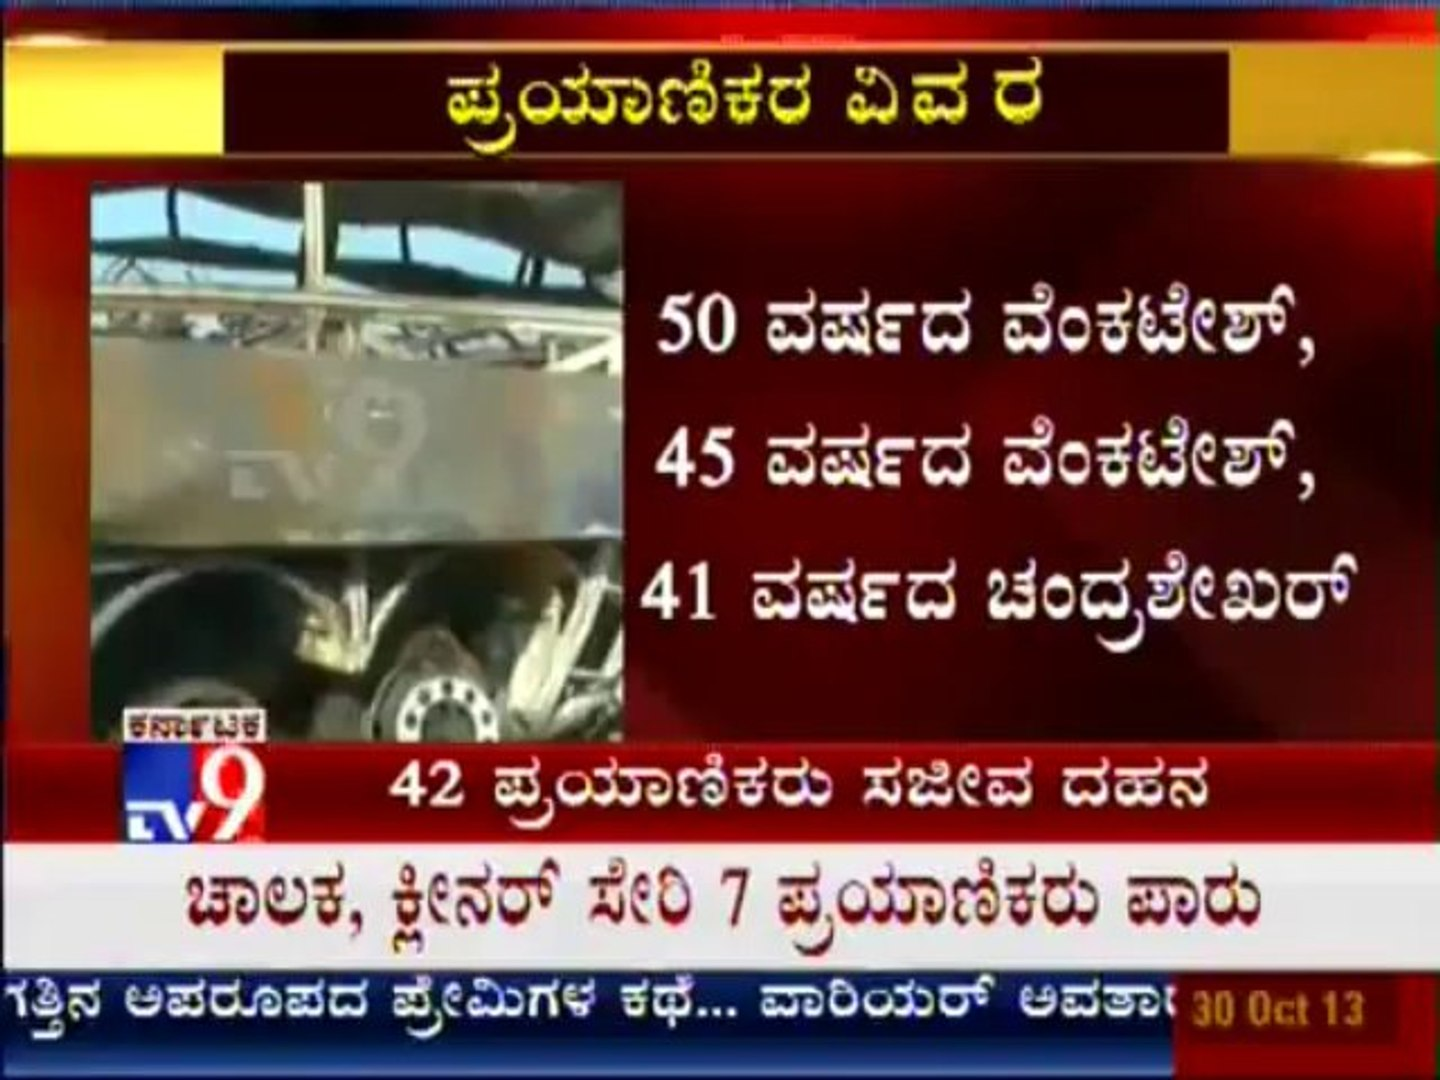 TV9 News: Bus Catches Fire in Andhra: 'Passengers List'